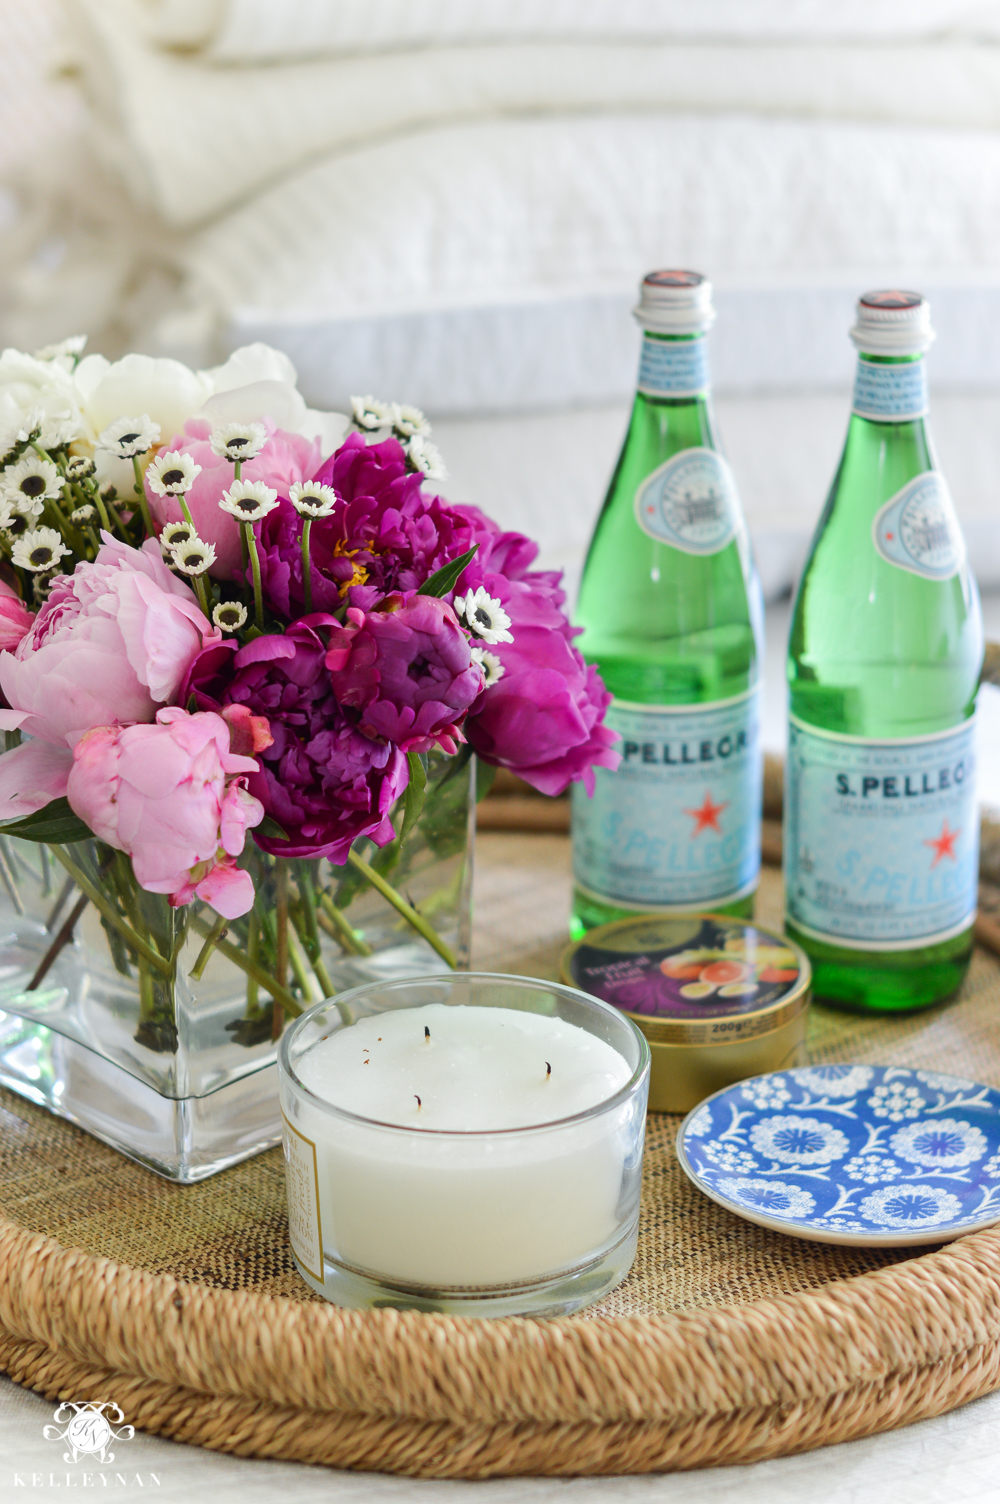 Guest Room Essentials- What every guest bedroom should have- woven tray with san pellegrino